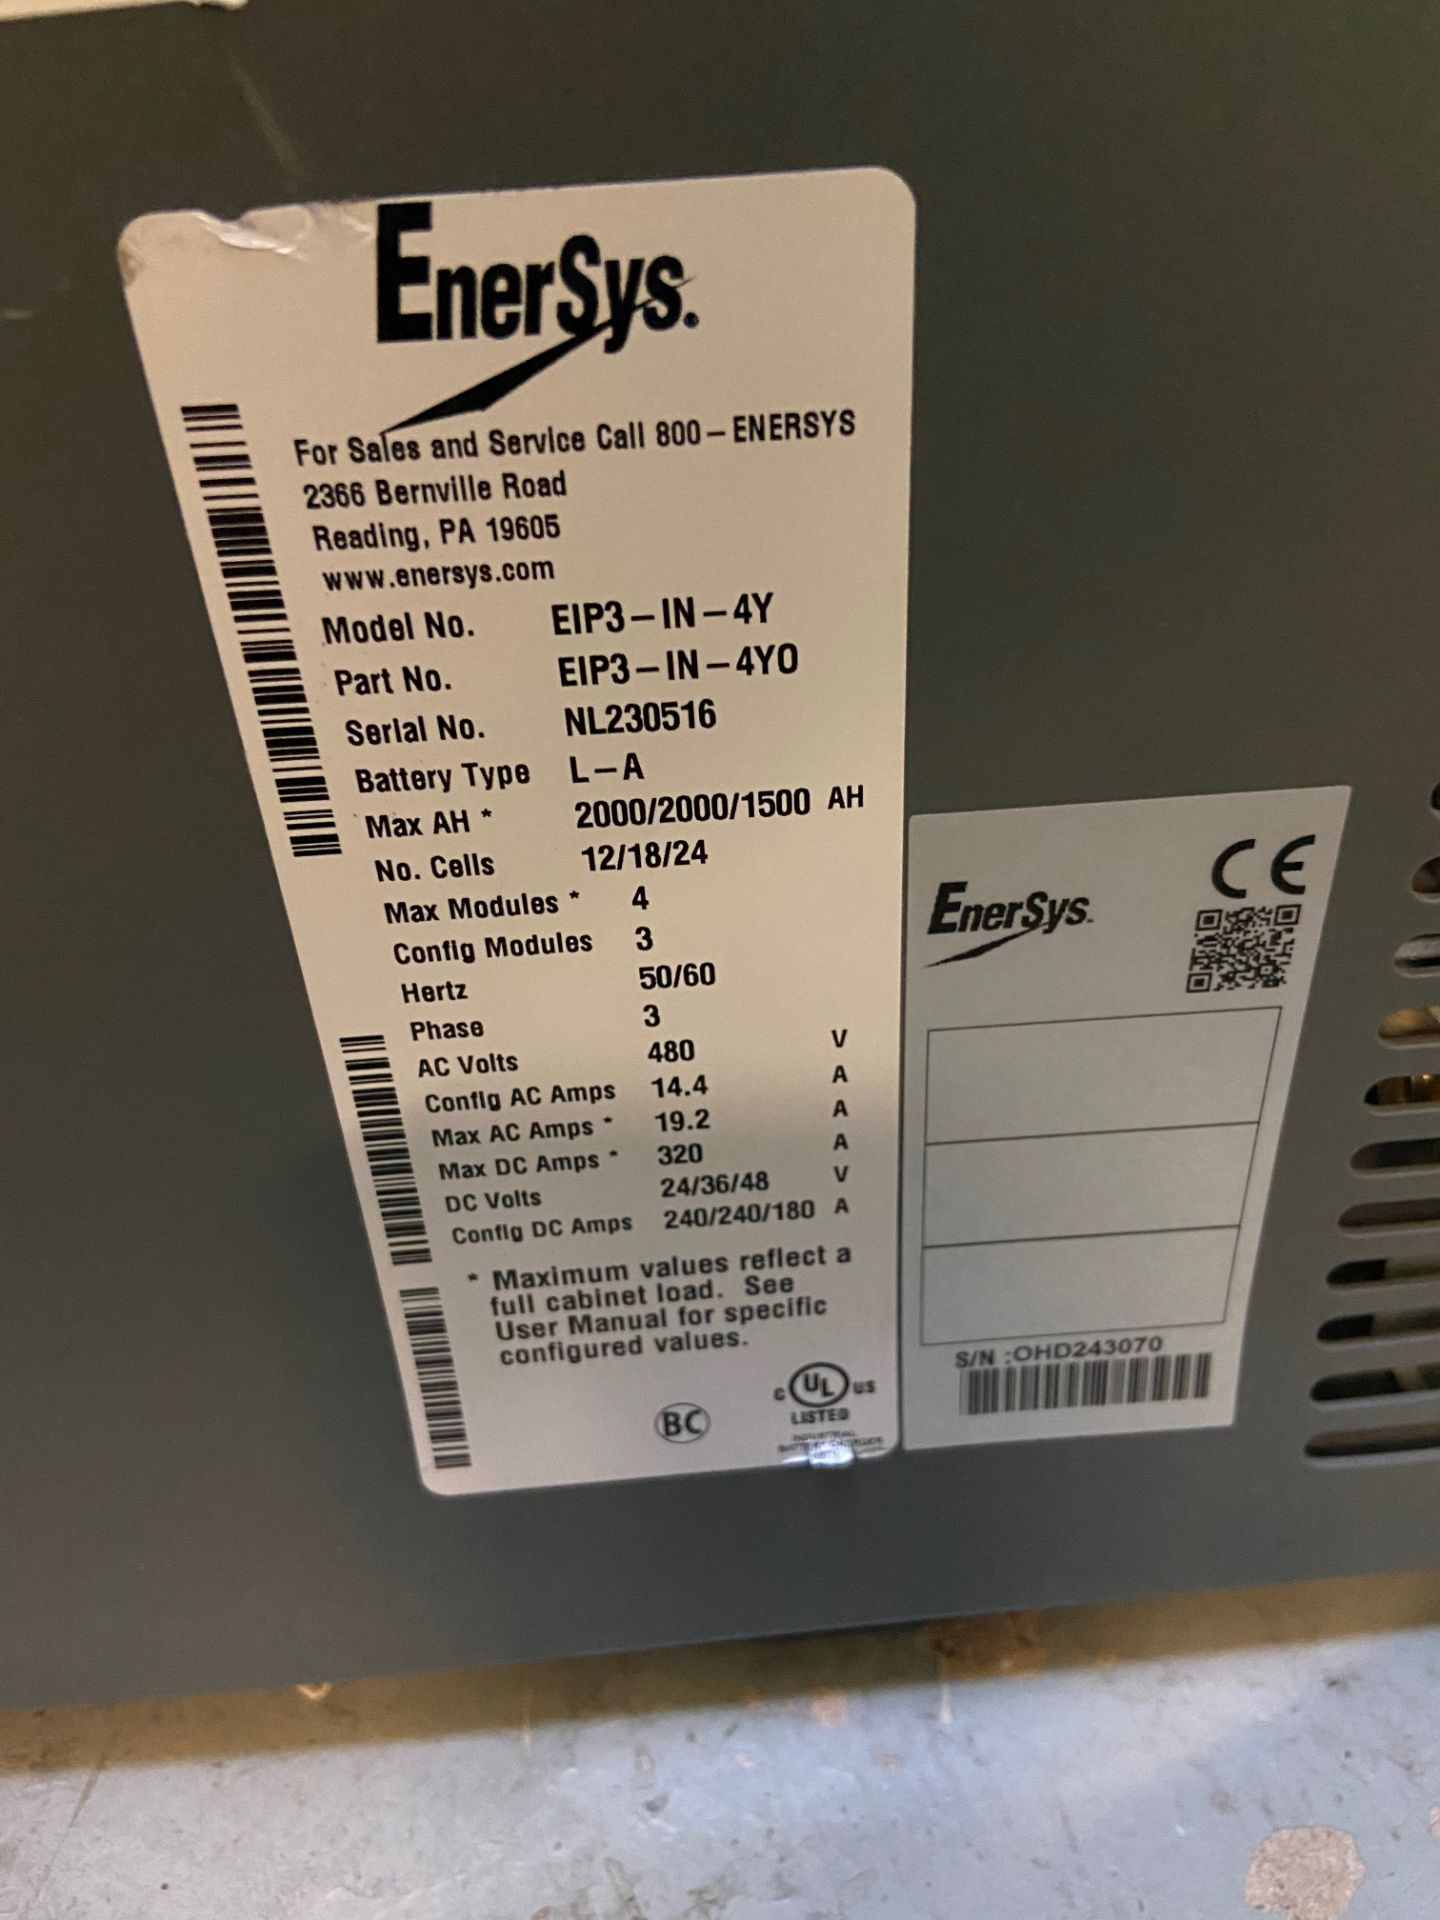 EnerSys Baterry Charger, Model# EIP3-IN-4Y, Serial# NL230516, 480V AC, 3 Phase, 24/36/48V DC, - Image 2 of 3